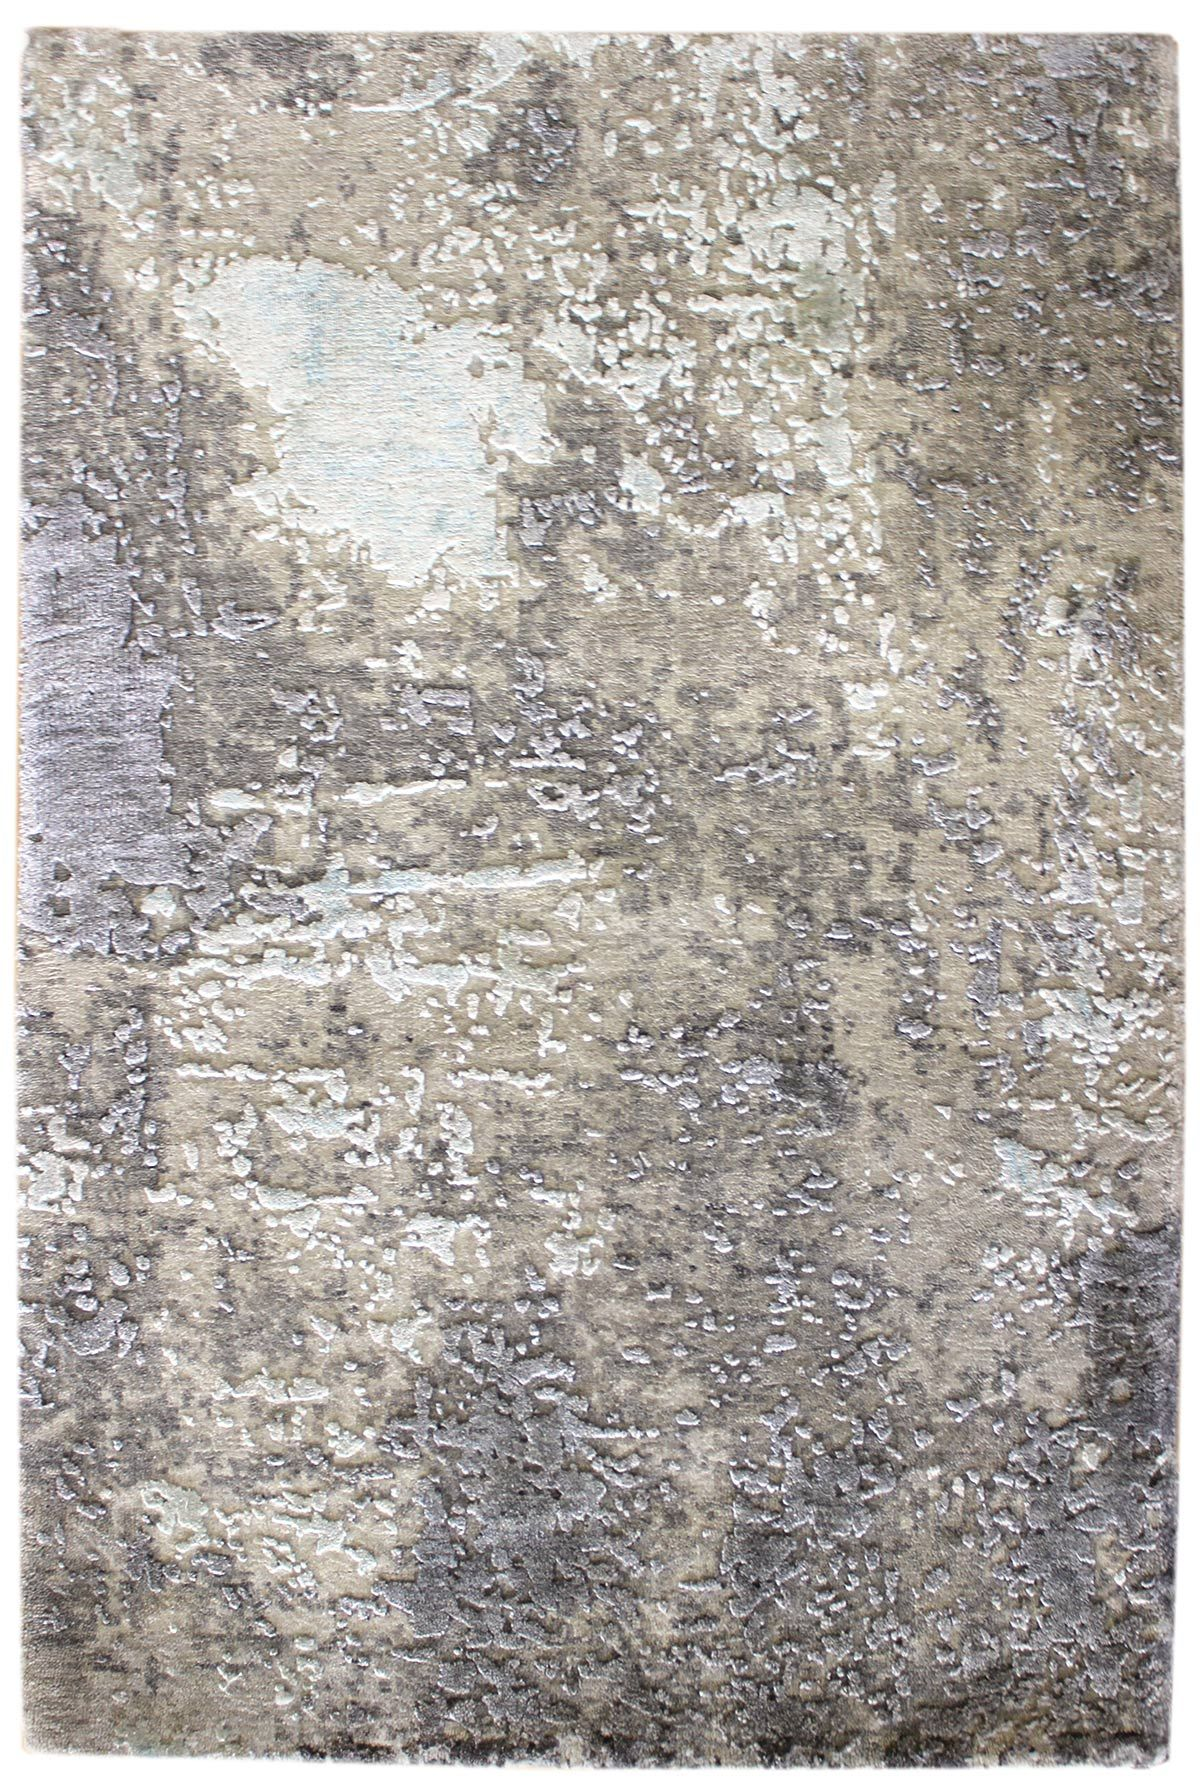 Recent Arrivals Gallery Modern Patinated Look Rug Hand